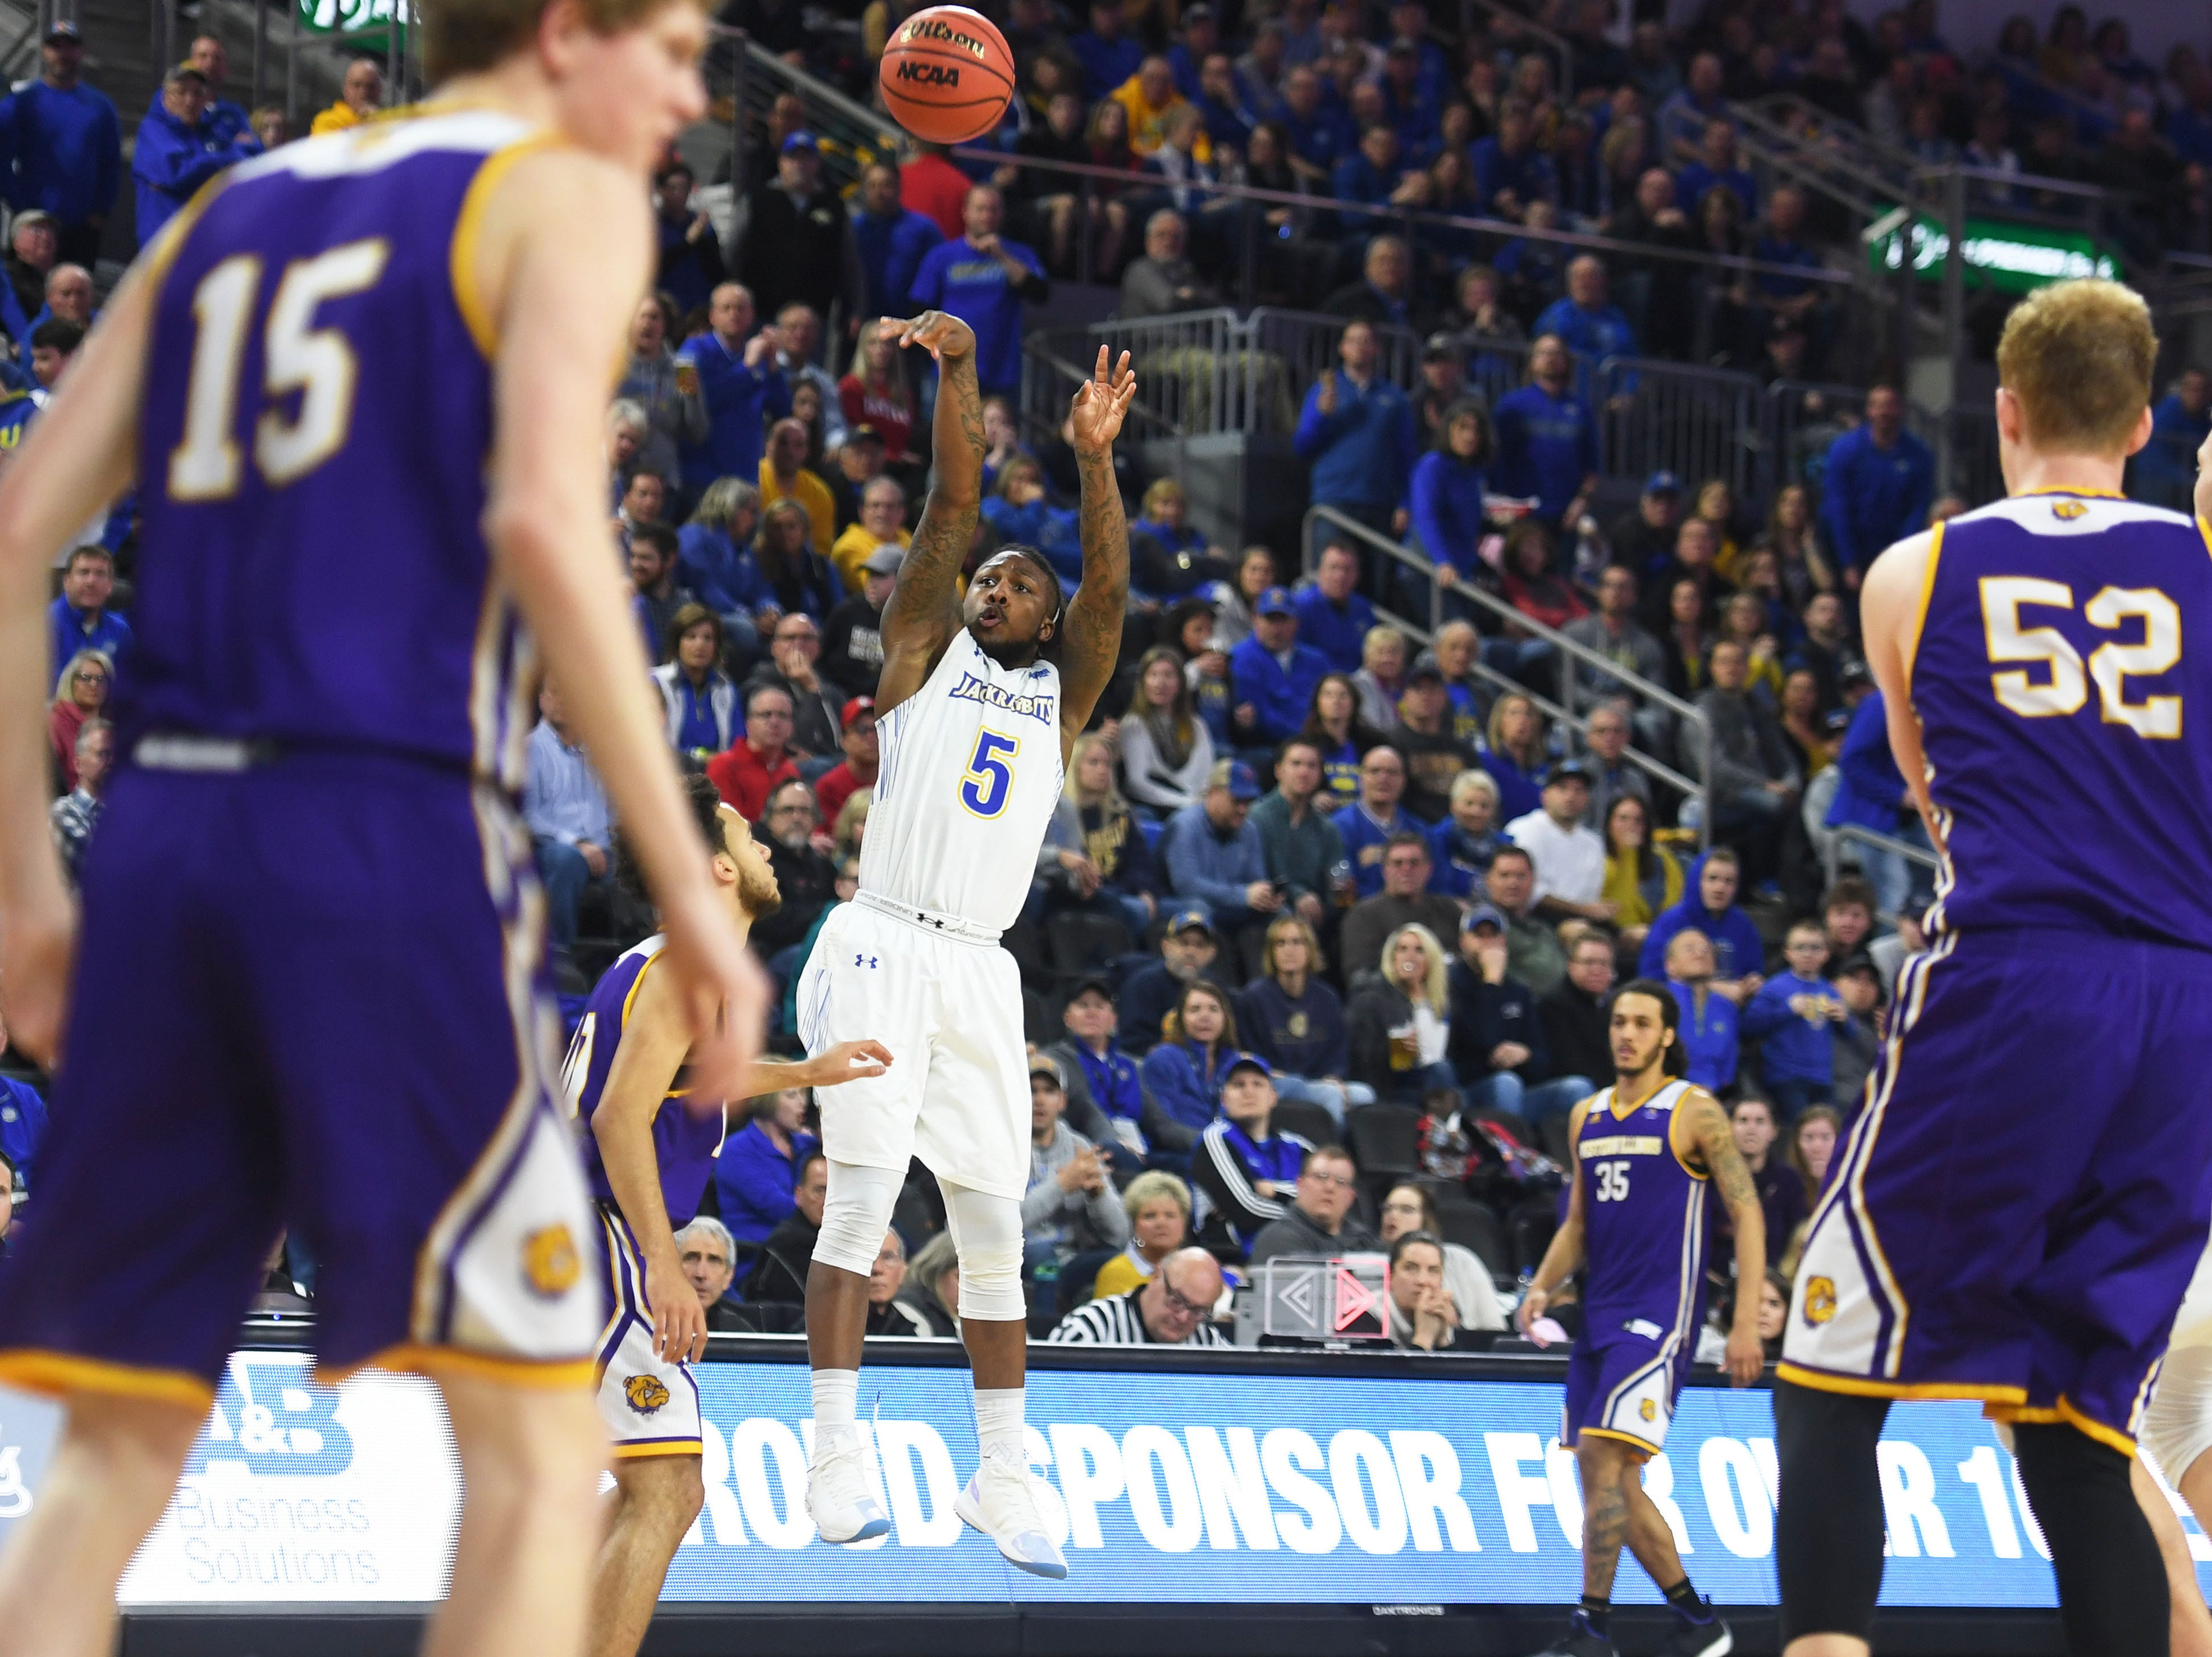 SDSU's David Jenkins scores a three pointer during the game against Western Illinois Saturday, March 9, in the Summit League tournament at the Denny Sanford Premier Center in Sioux Falls.